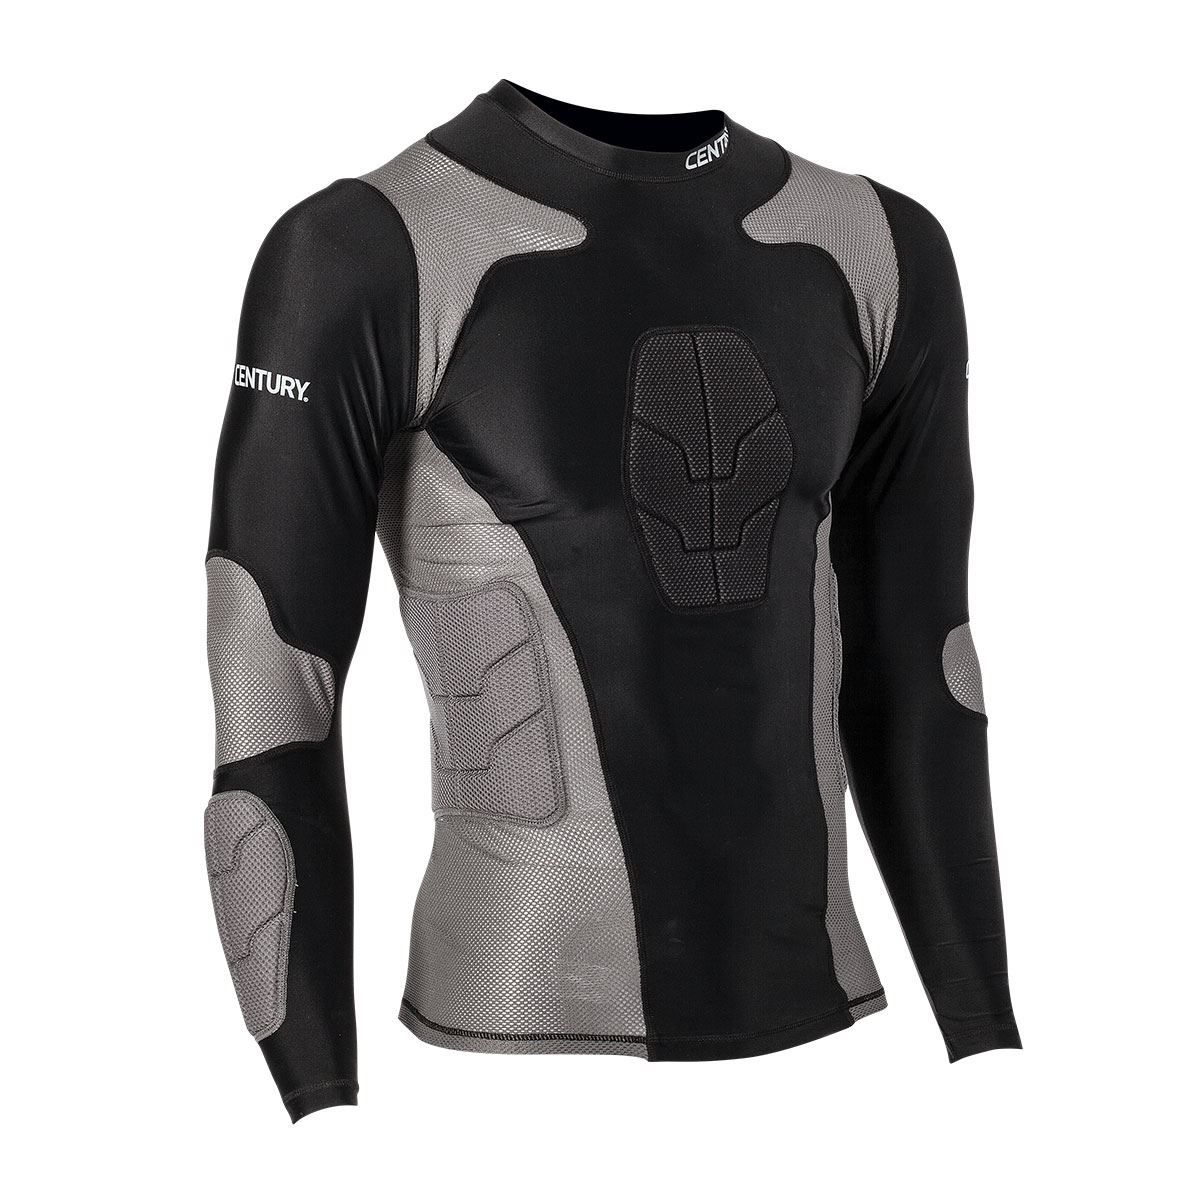 Long sleeve padded compression shirt padded compression